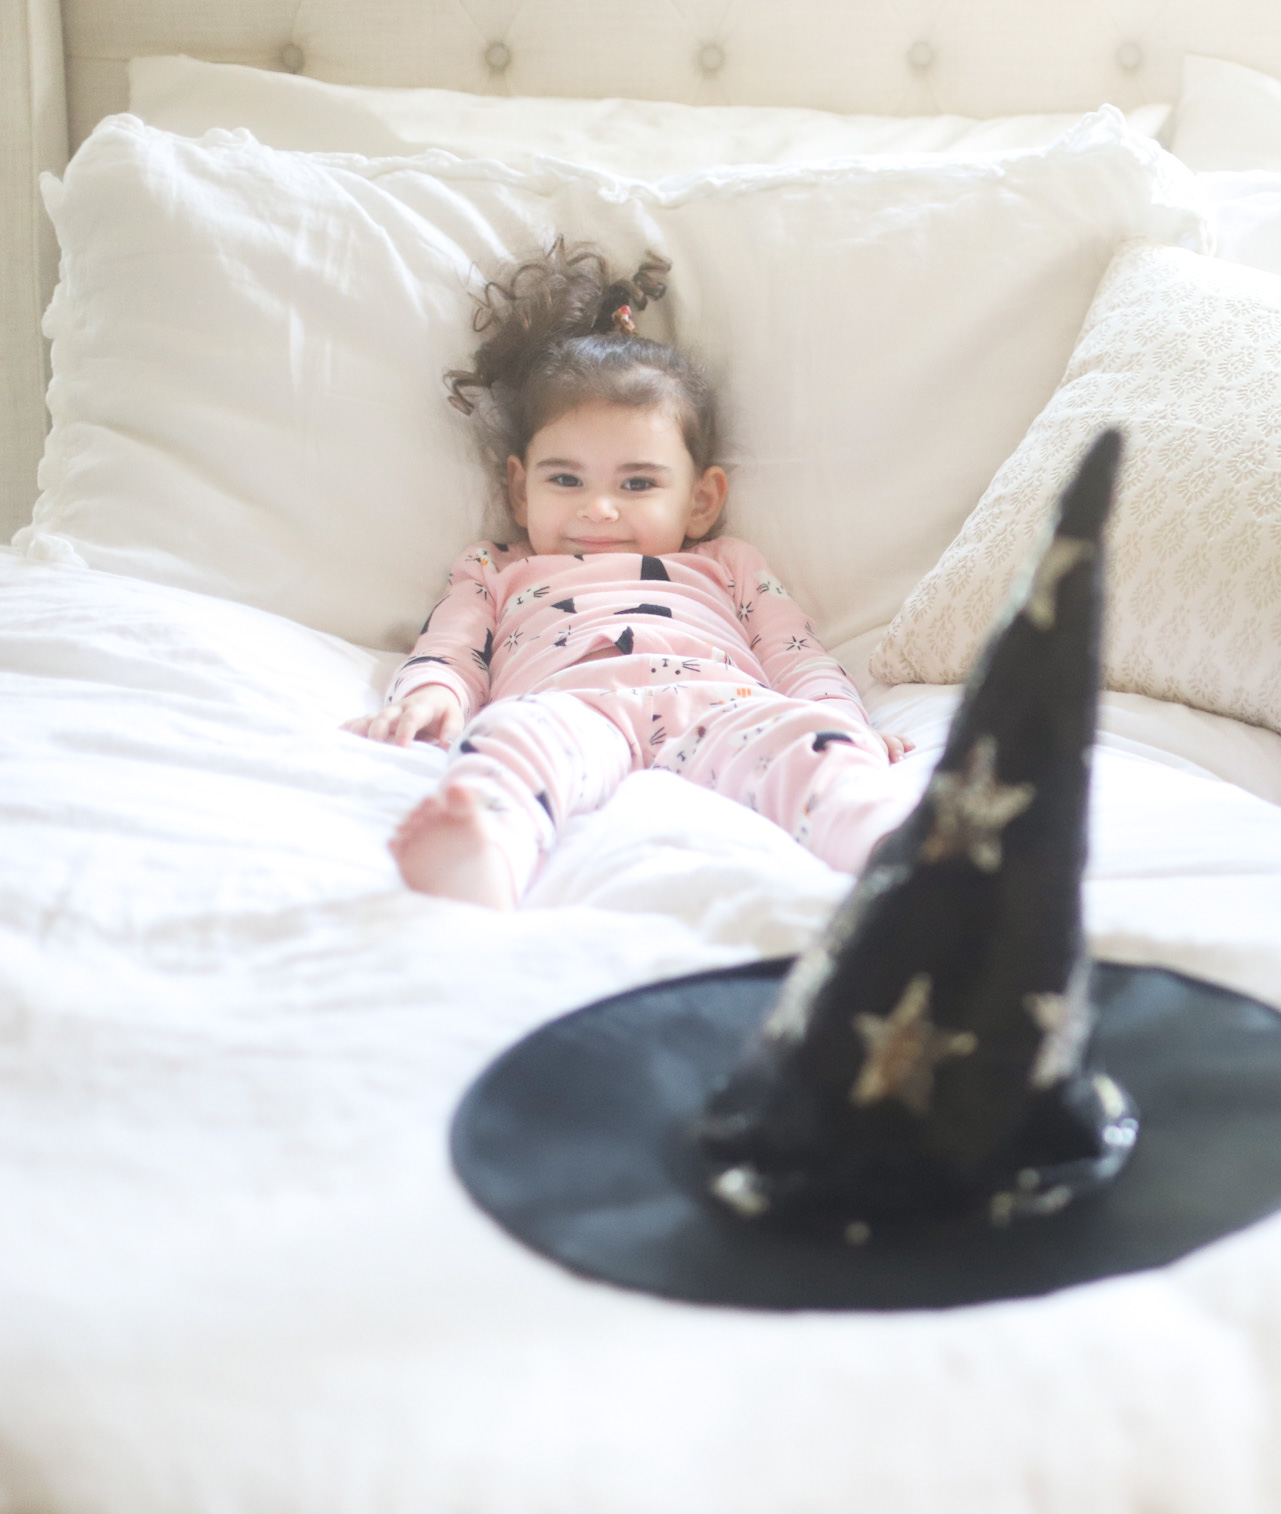 Get spooky and festive and dress your kids in the cutest matching Halloween pajamas this year! It's the sweetest family tradition. | @glitterinclexi | GLITTERINC.COM